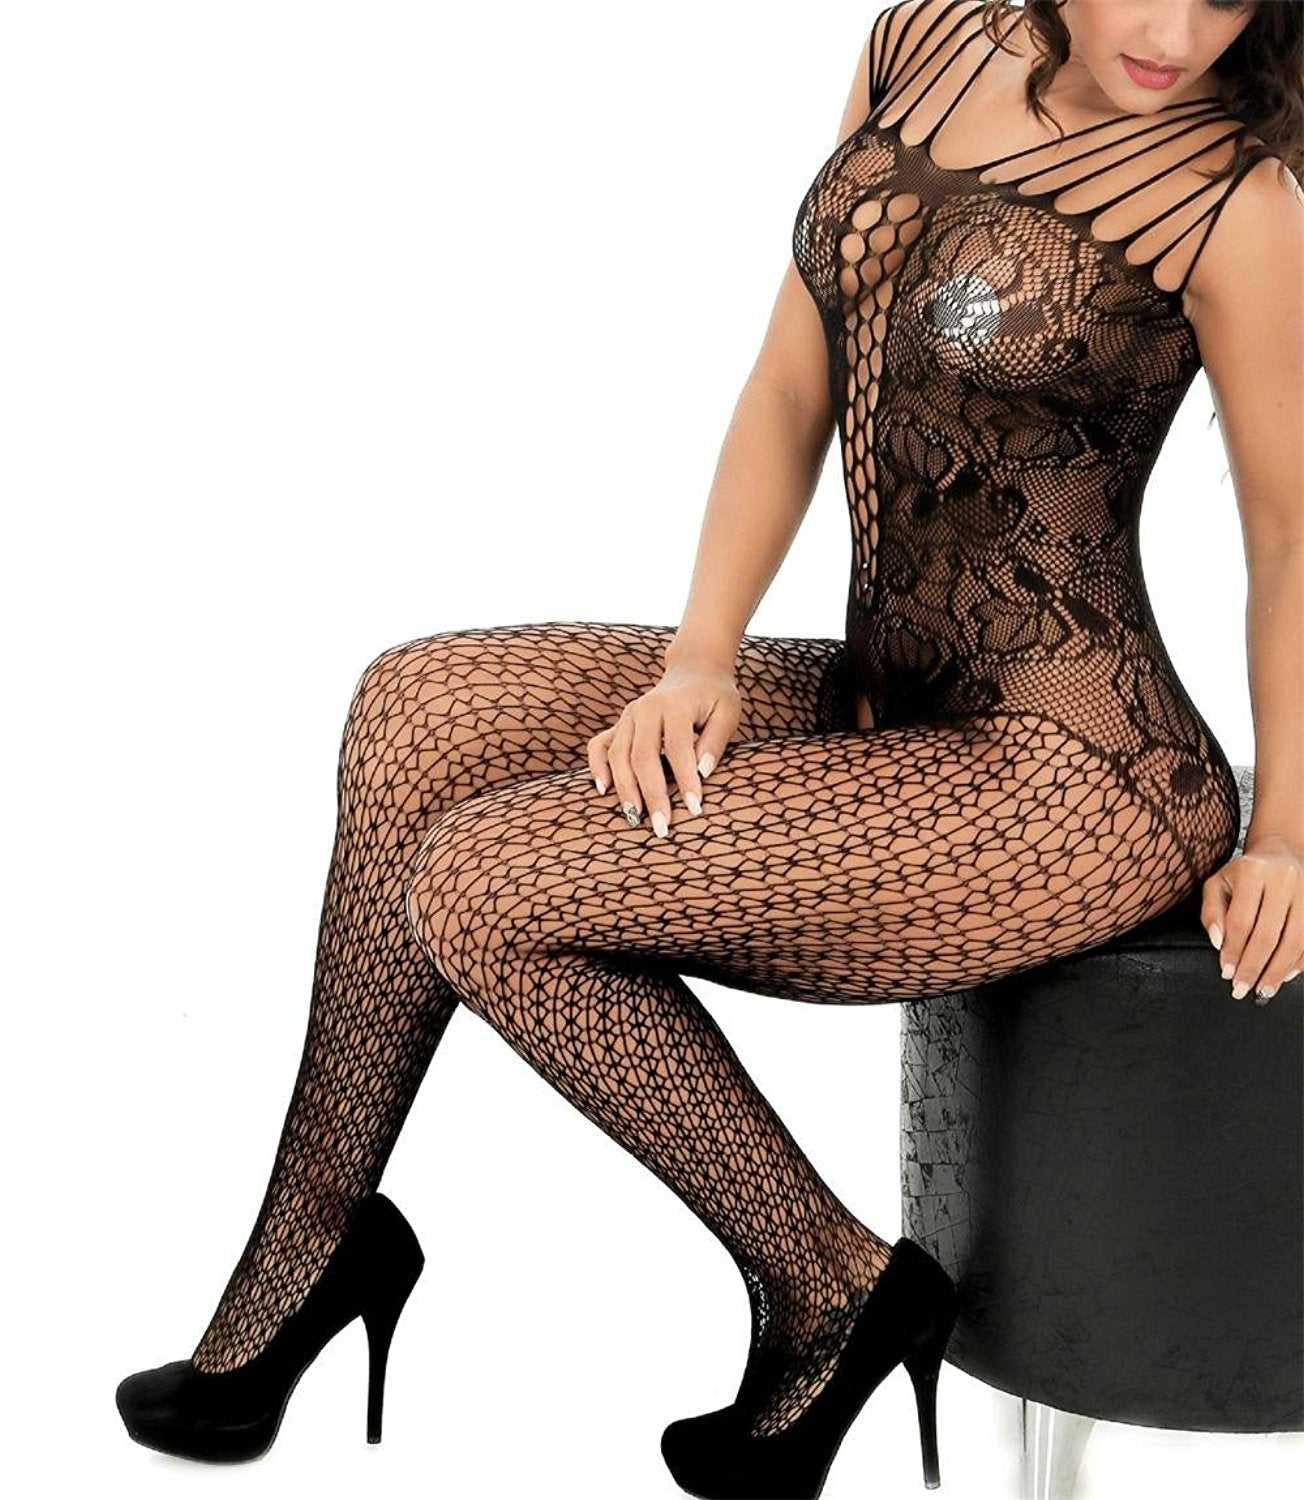 a988dd44182 Curbigals crotchless bodystocking Plus Size Open Crotch Teddy Lingerie for  Women ...